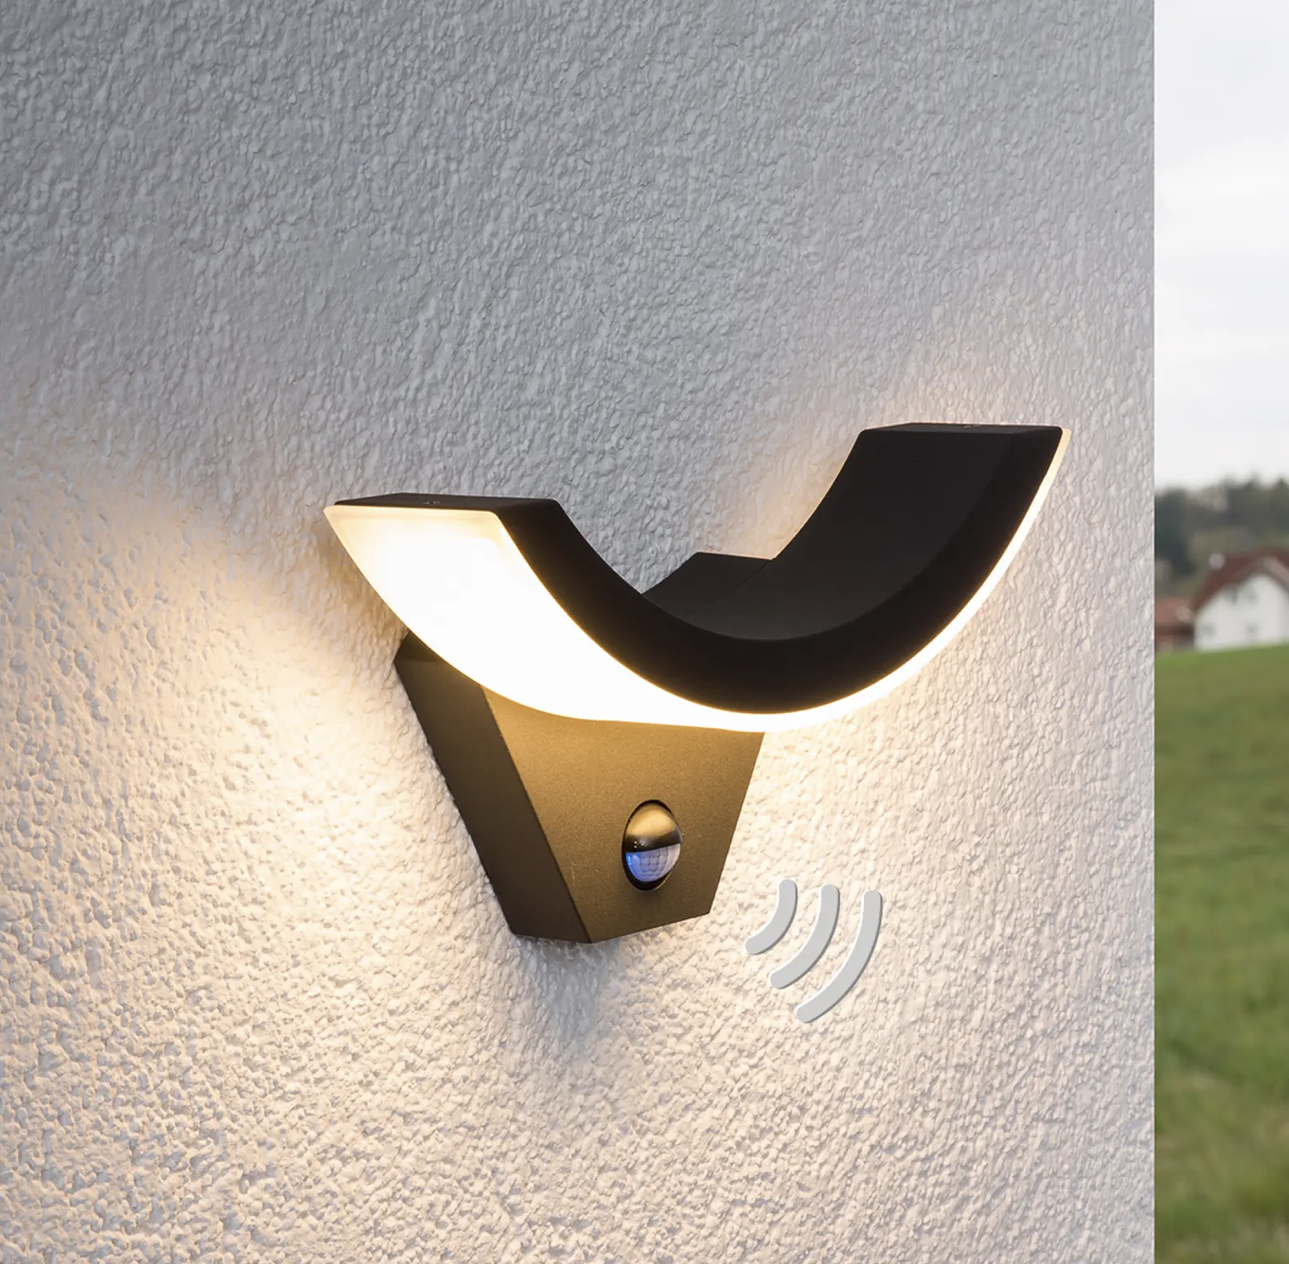 Lucande LED Garden Security Lights with Motion Detection